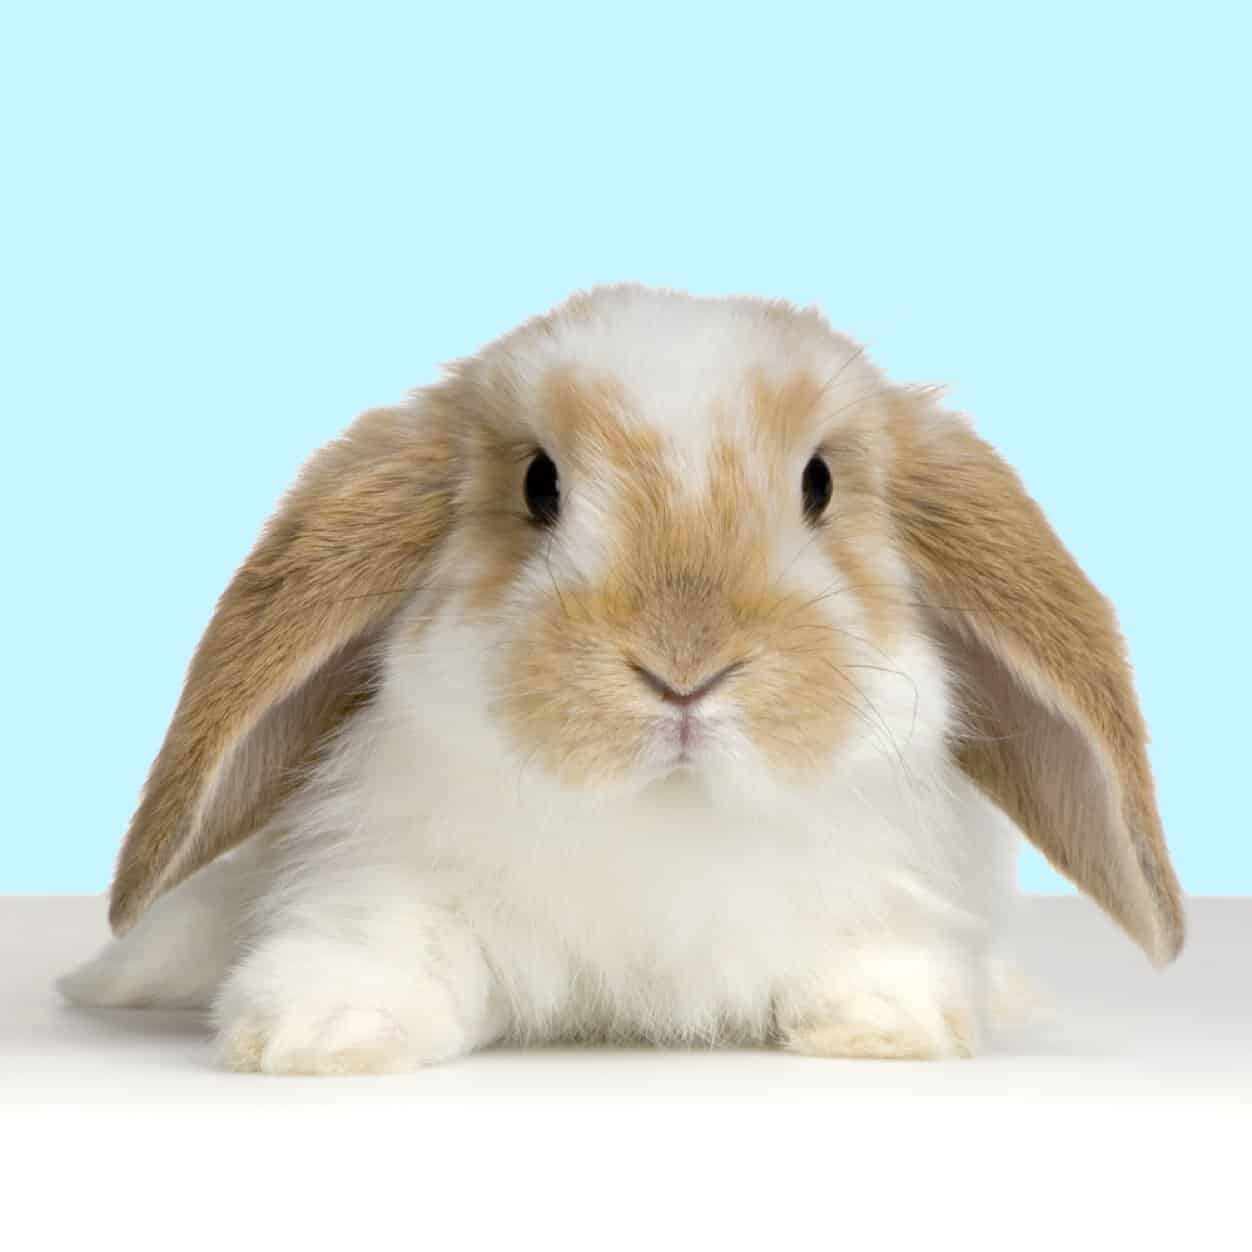 bunny pictures